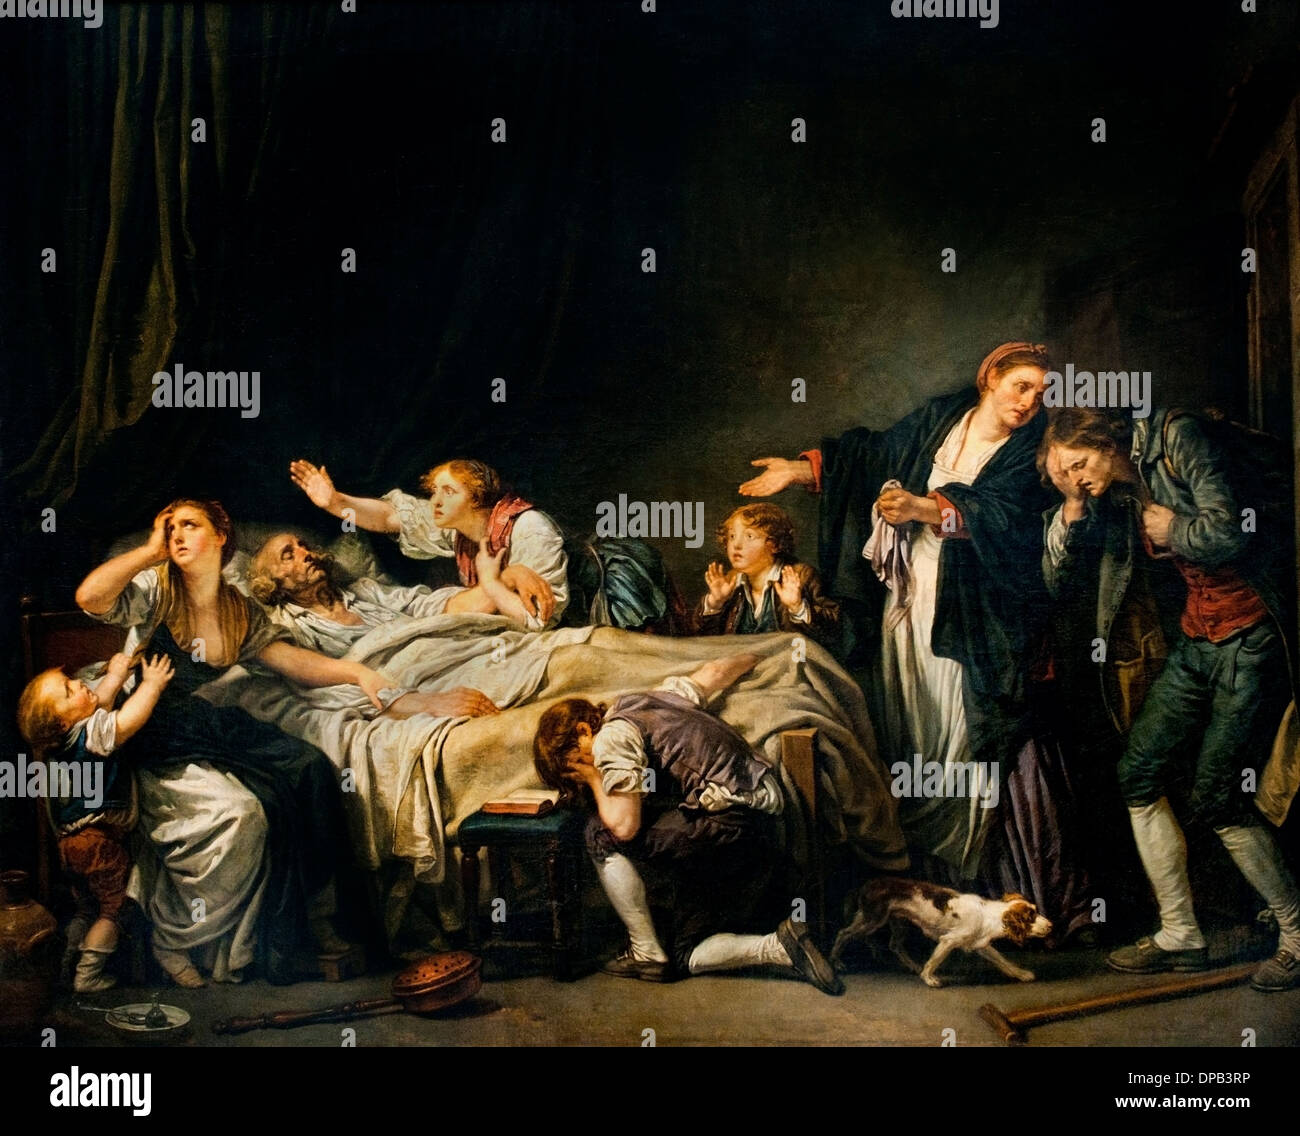 Malédiction paternelle fils puni 1778 Jean Baptiste GREUZE 1725 -1805 Français France Photo Stock